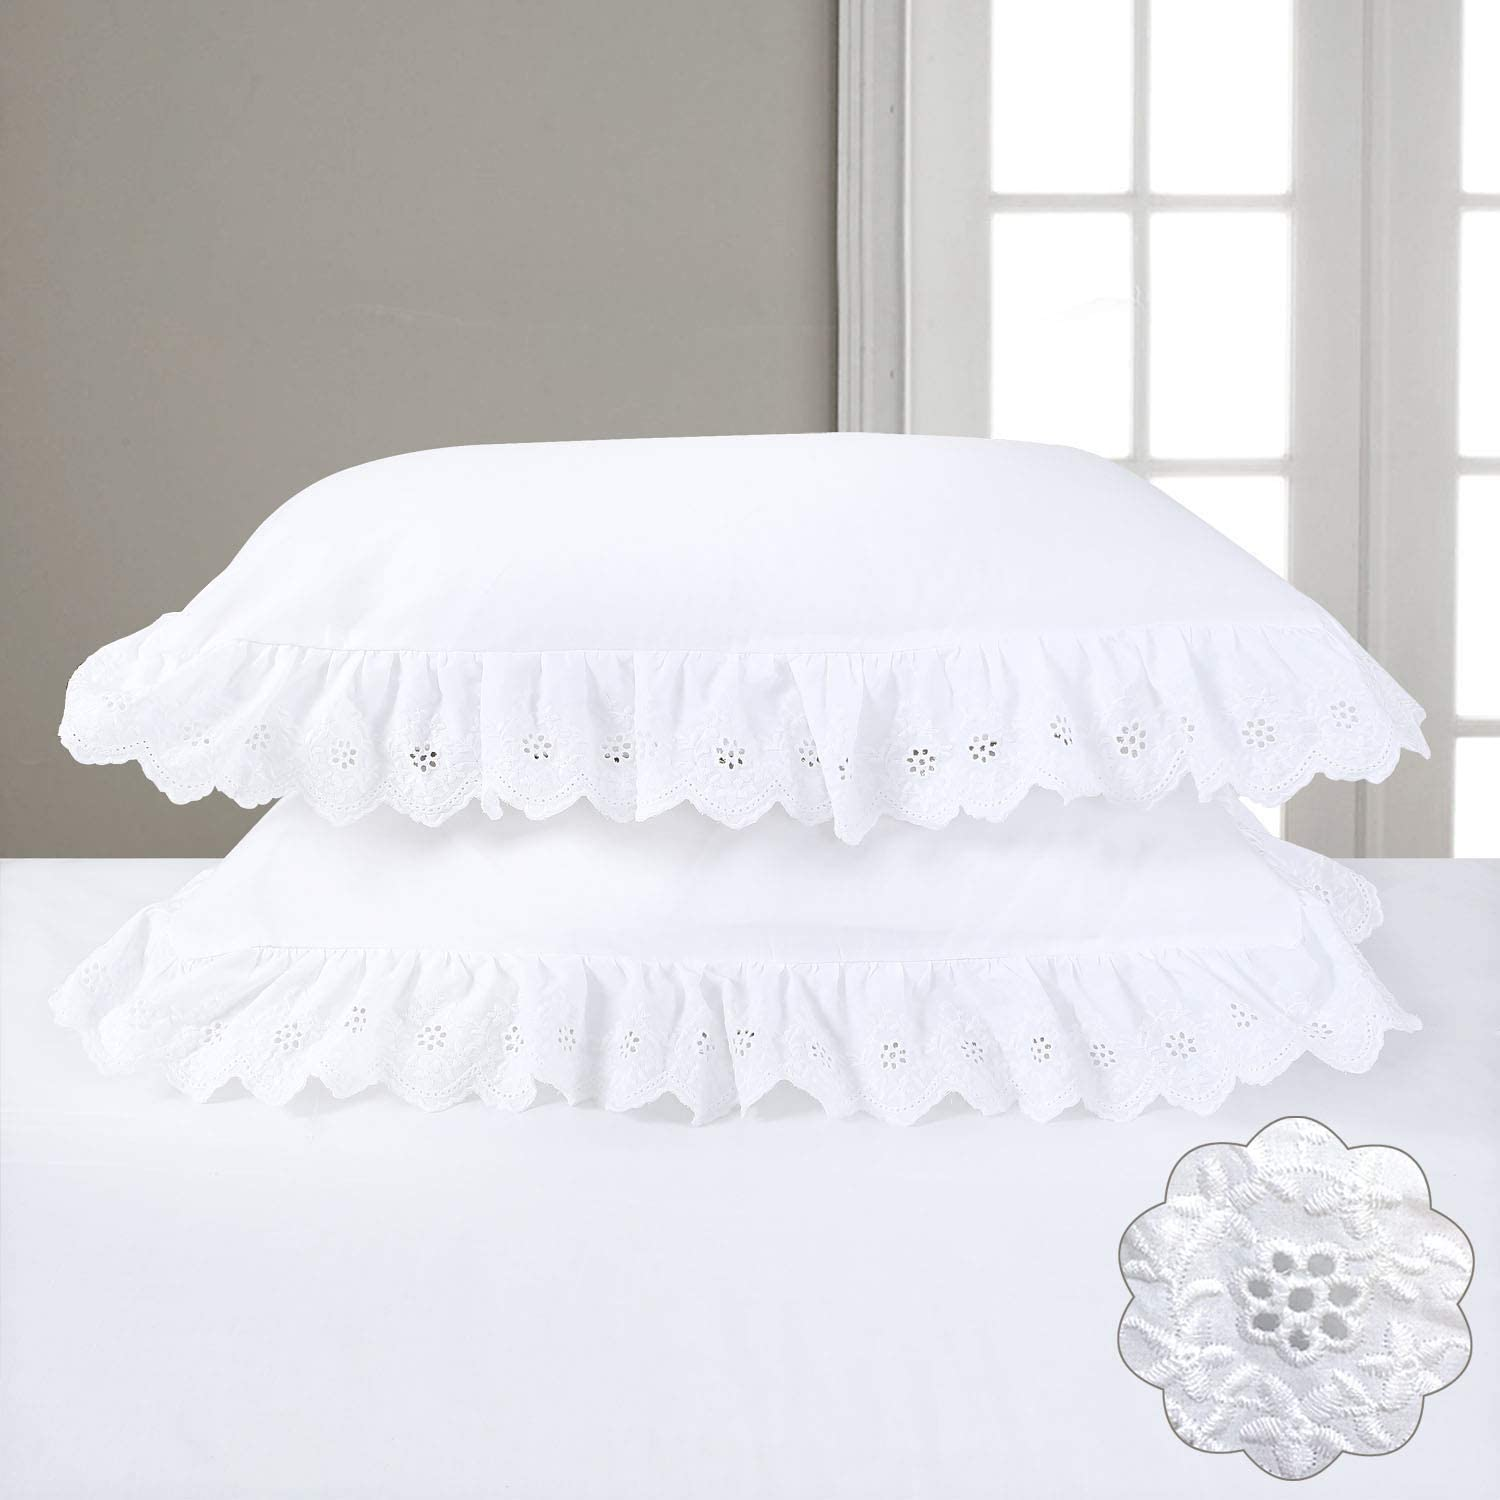 YINFUNG Eyelet Pillow Shams White Ruffled King Shabby Chic Set of 2 Lace Pillowcases Scalloped Farmhouse Country Elegant Pretty Girls Cute Ruffle Embroidered 2 Pieces 20×36 Vintage Cotton 100%